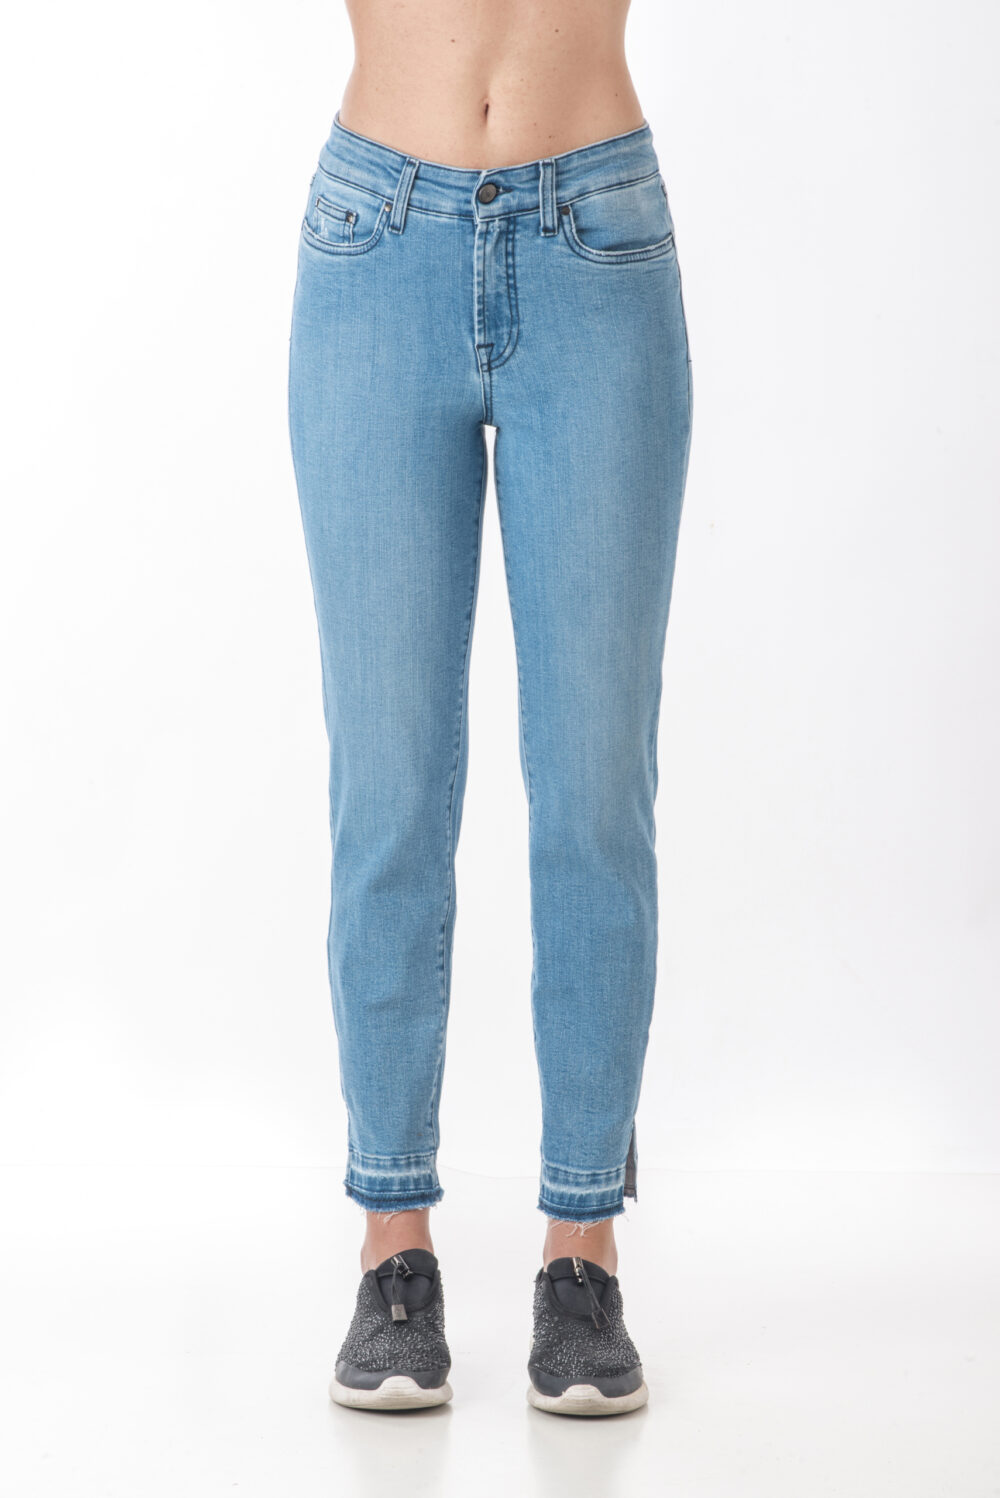 Jonny Q jeans Meryl X fit stretch old used scaled